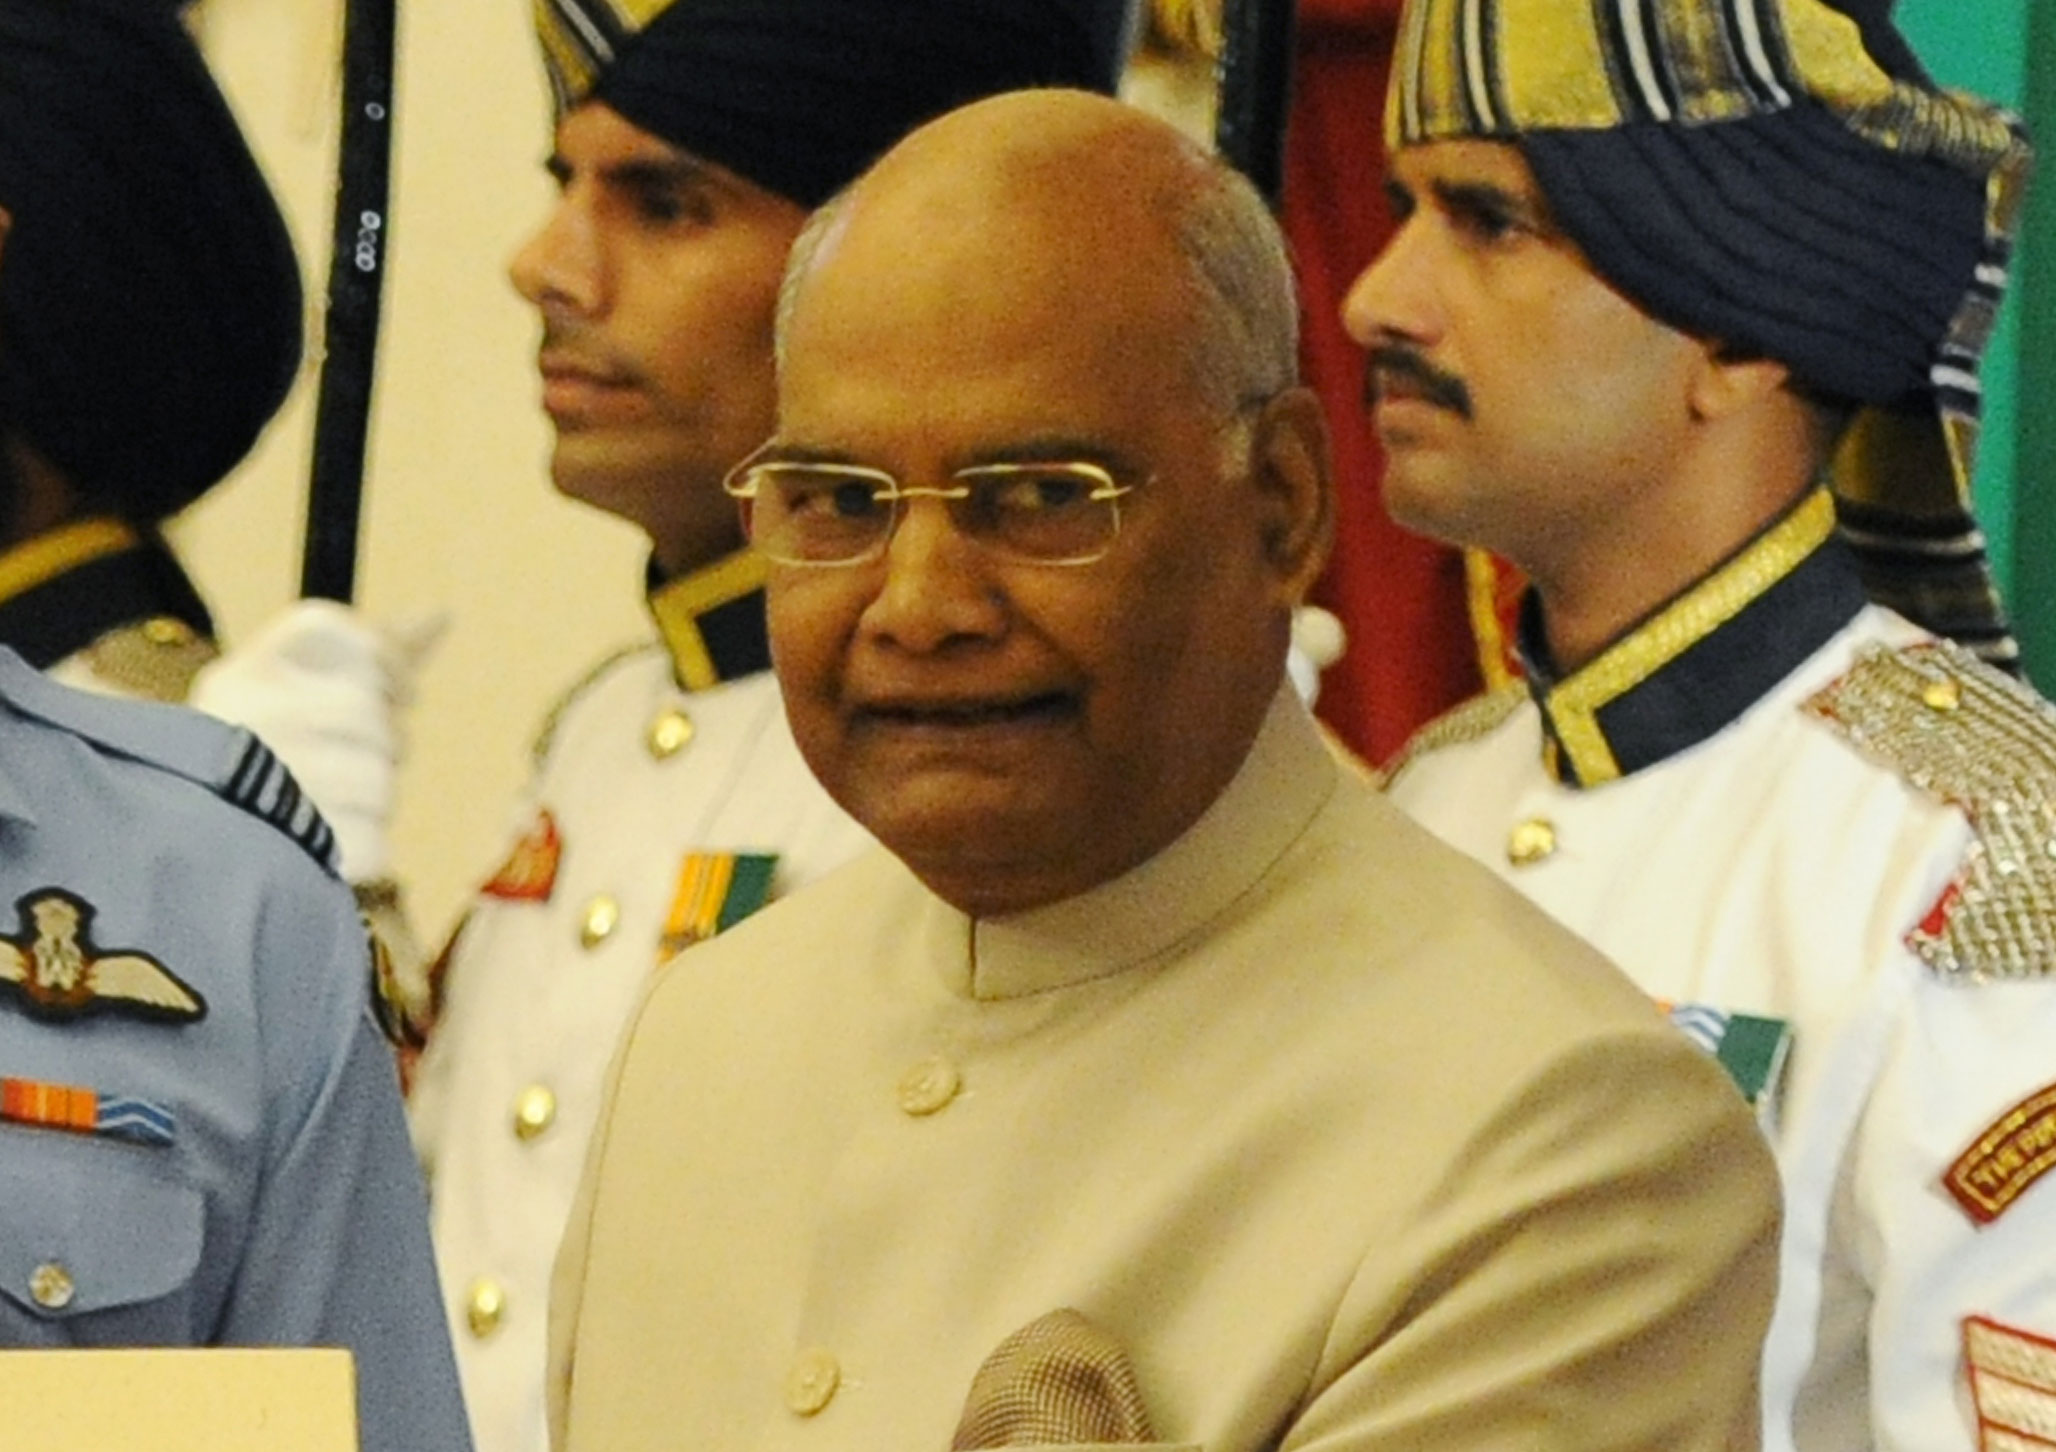 The letter to Ram Nath Kovind, signed by as many as 80 former civil servants, defence officers, judges, academicians and professionals, said